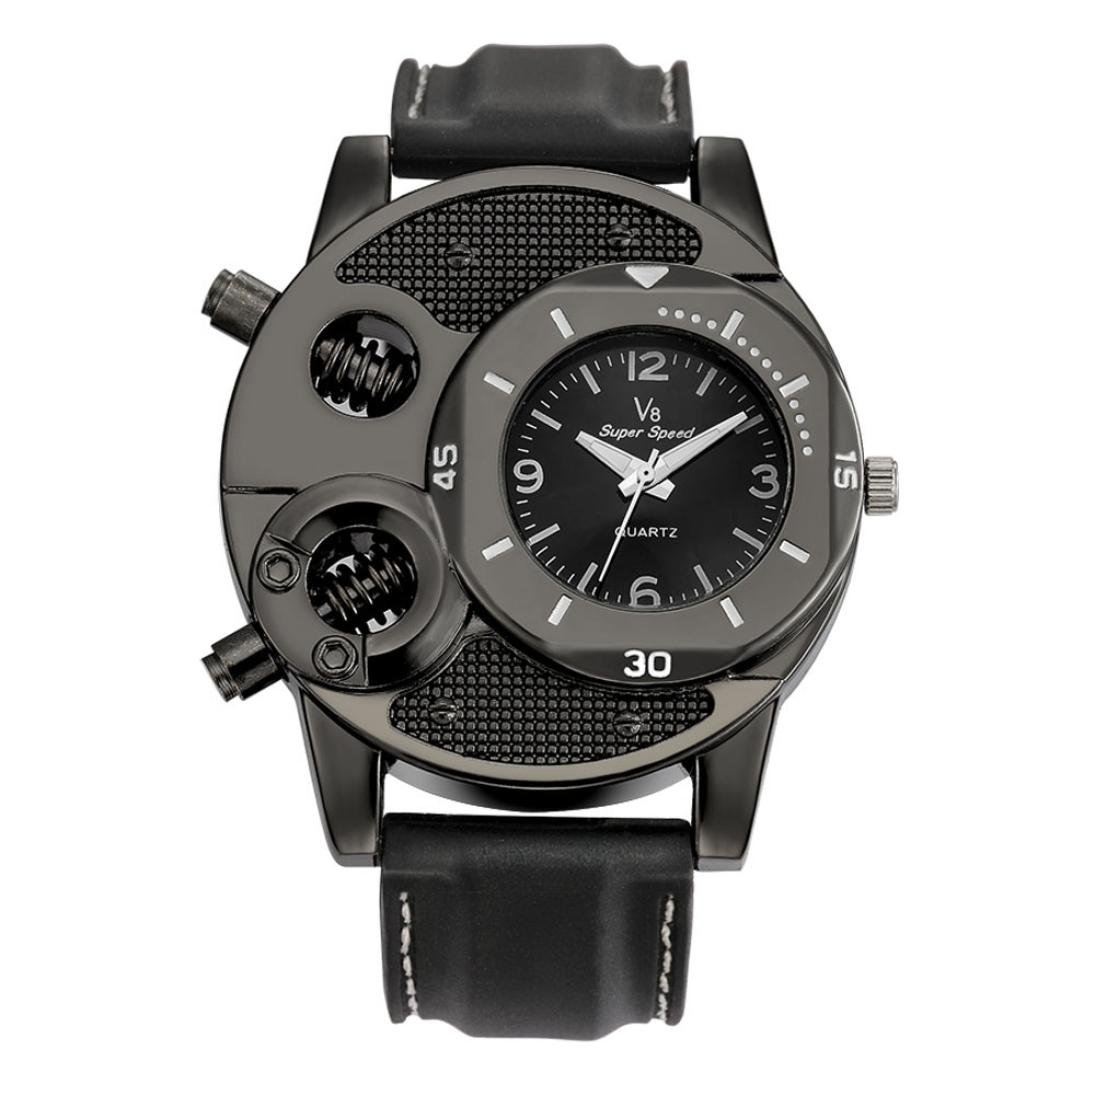 3c7b8091c1a Amazon.com  Han Shi Hot Sale Men s Quartz Watch Fashion Business Round  Sports Wristwatch (Black